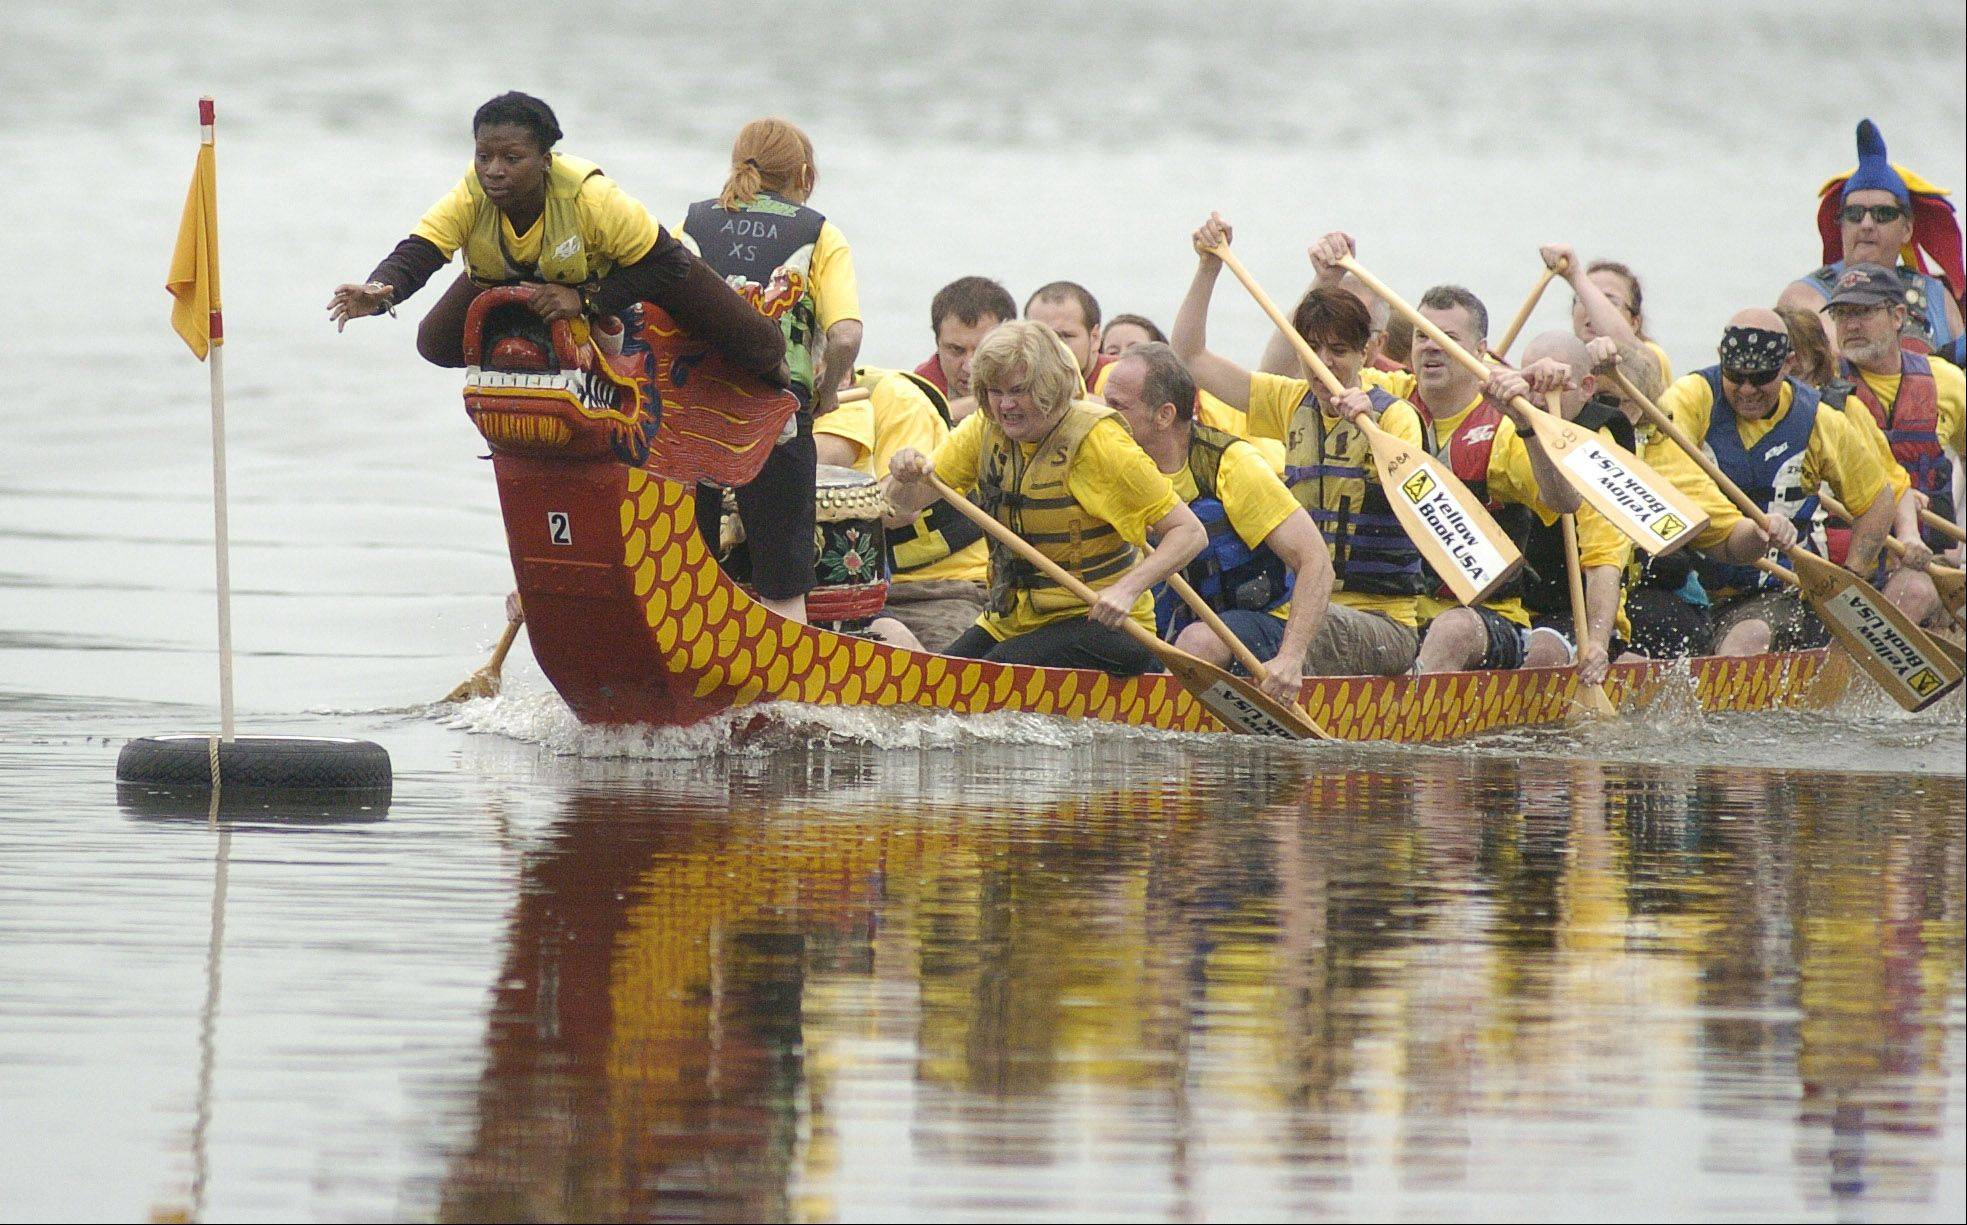 Siessourby Soma, 17, of Evanston grabs the flag for her team, the World Dragons, to win the first of two heats during dragon boat races during the Pride of the Fox RiverFest in St. Charles last year.